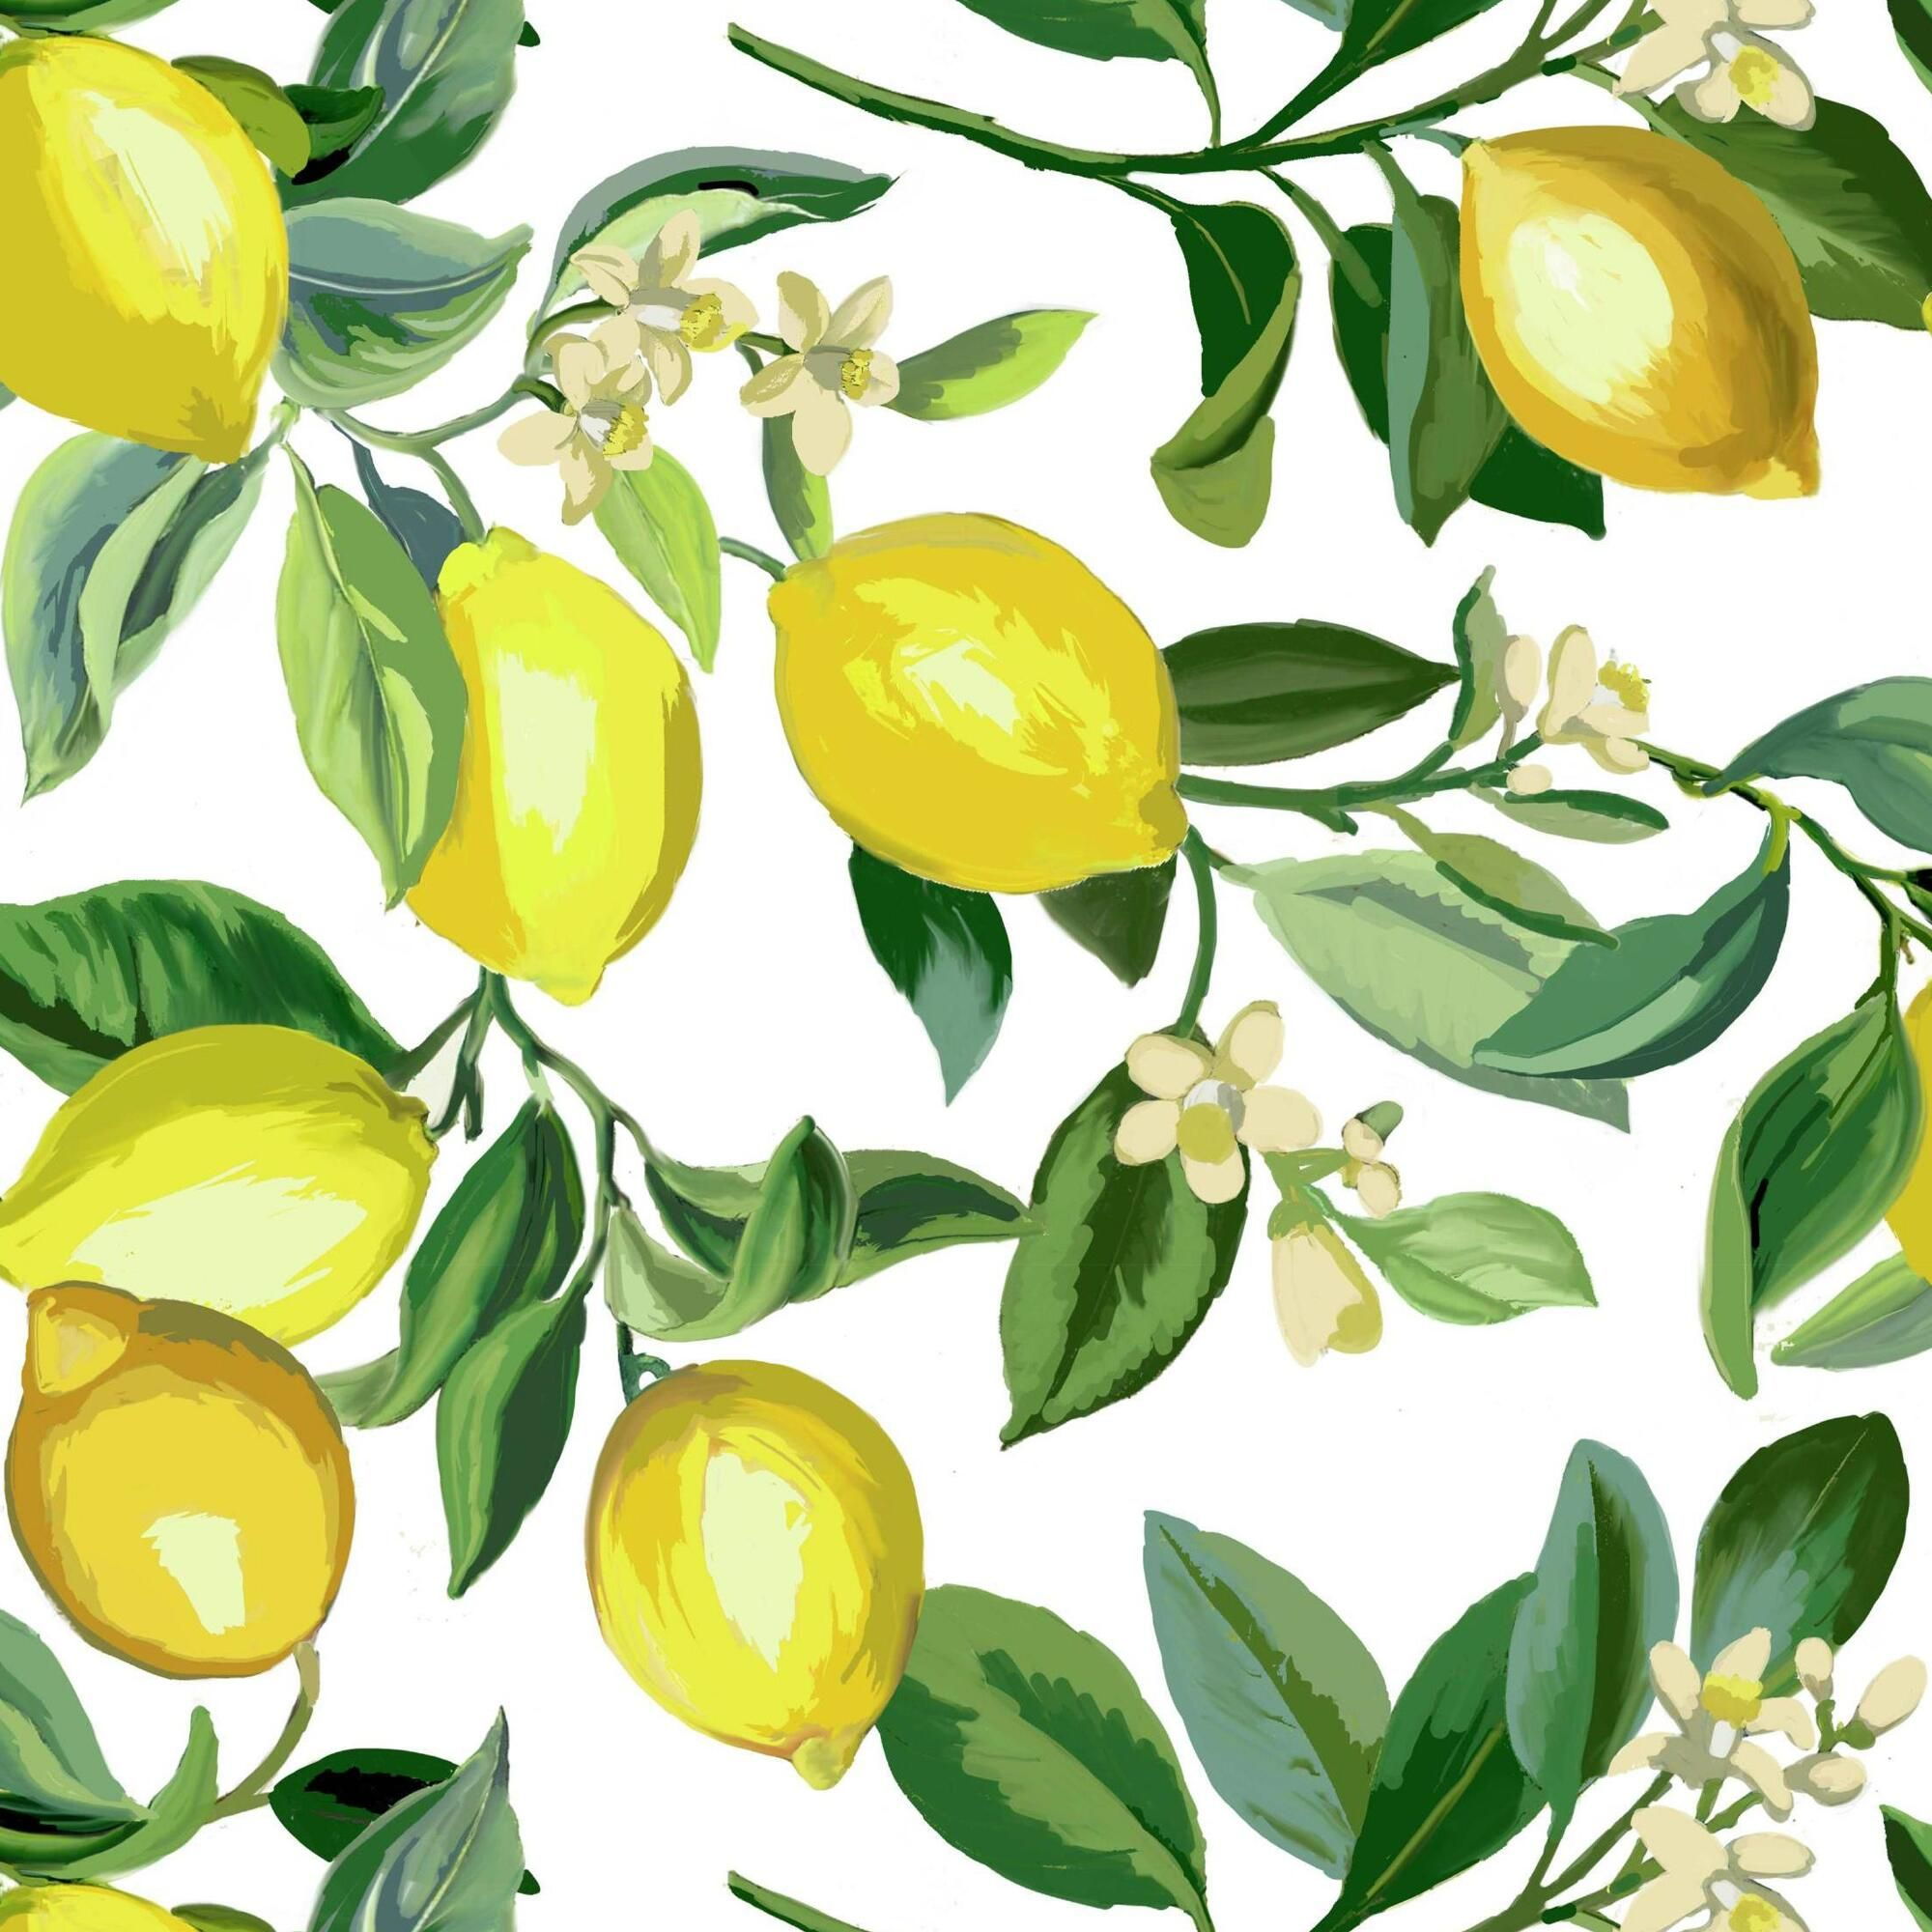 White and Yellow Lemon Peel and Stick Wallpaper (With